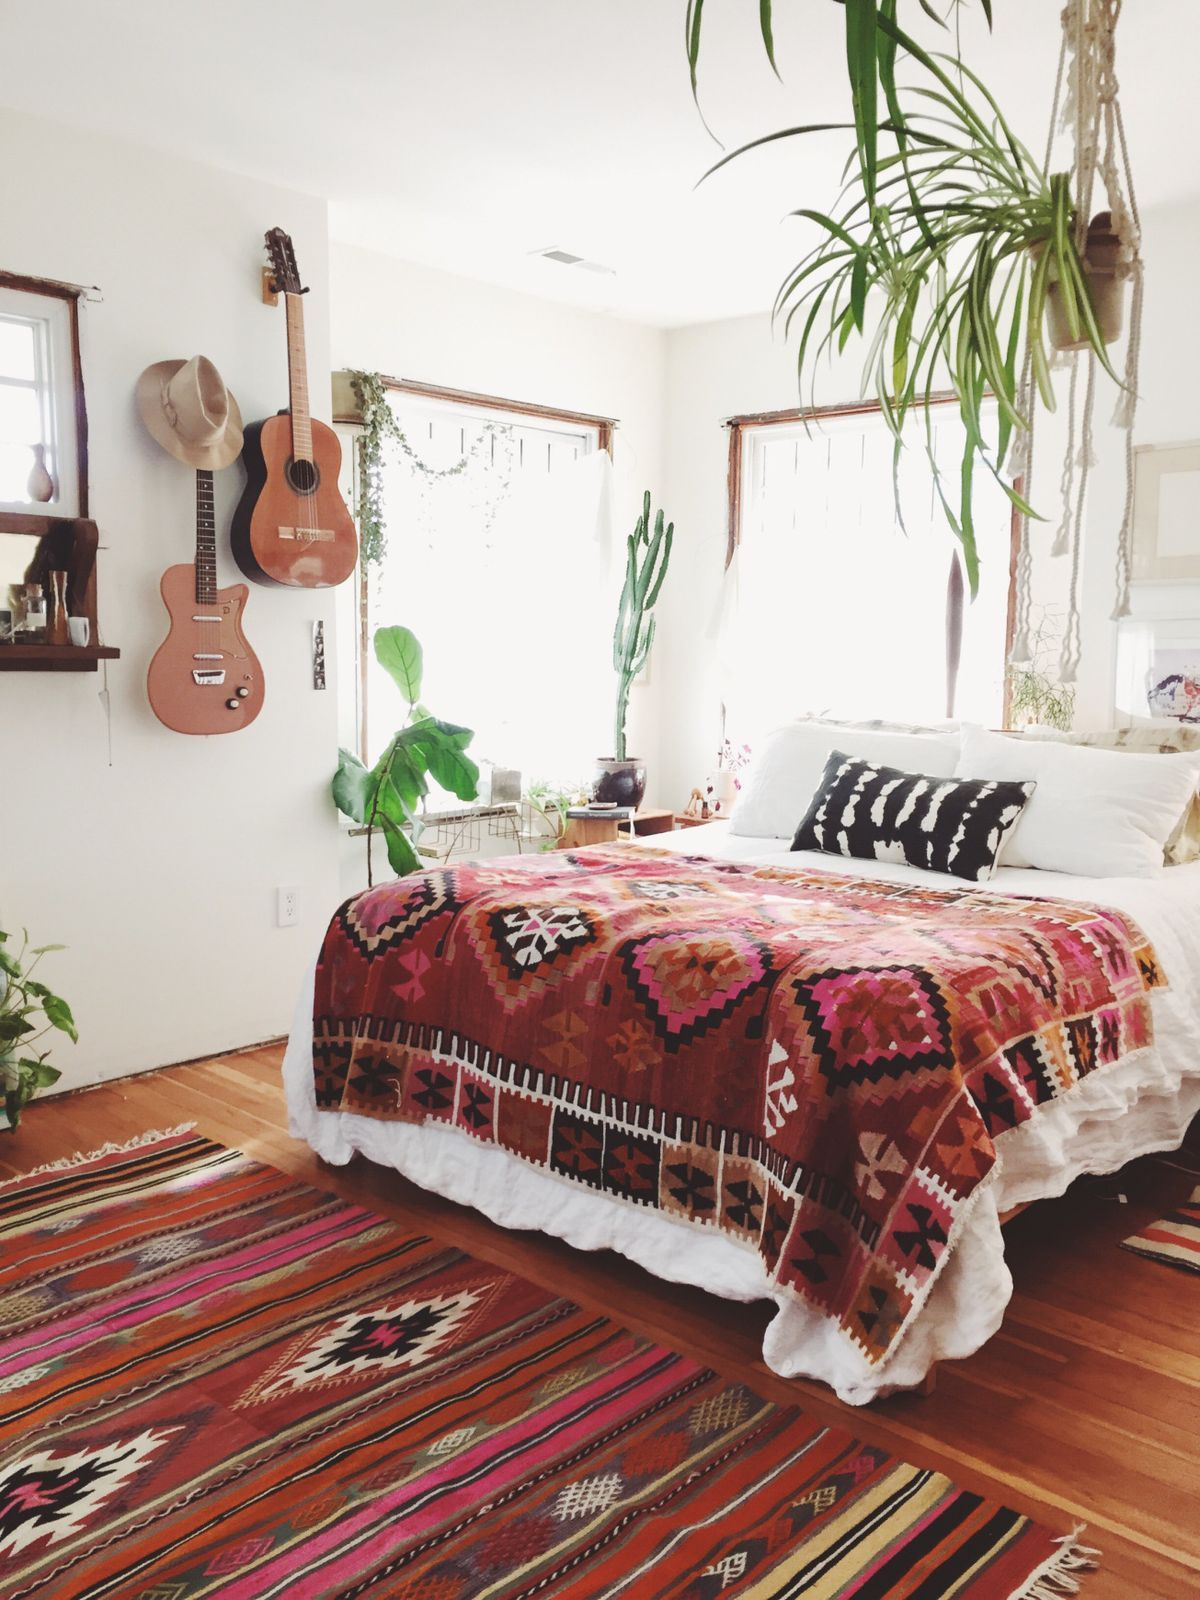 A Little Too Boho But I Like The Plain Bedspread With Fun Blanket And Plants Of Course